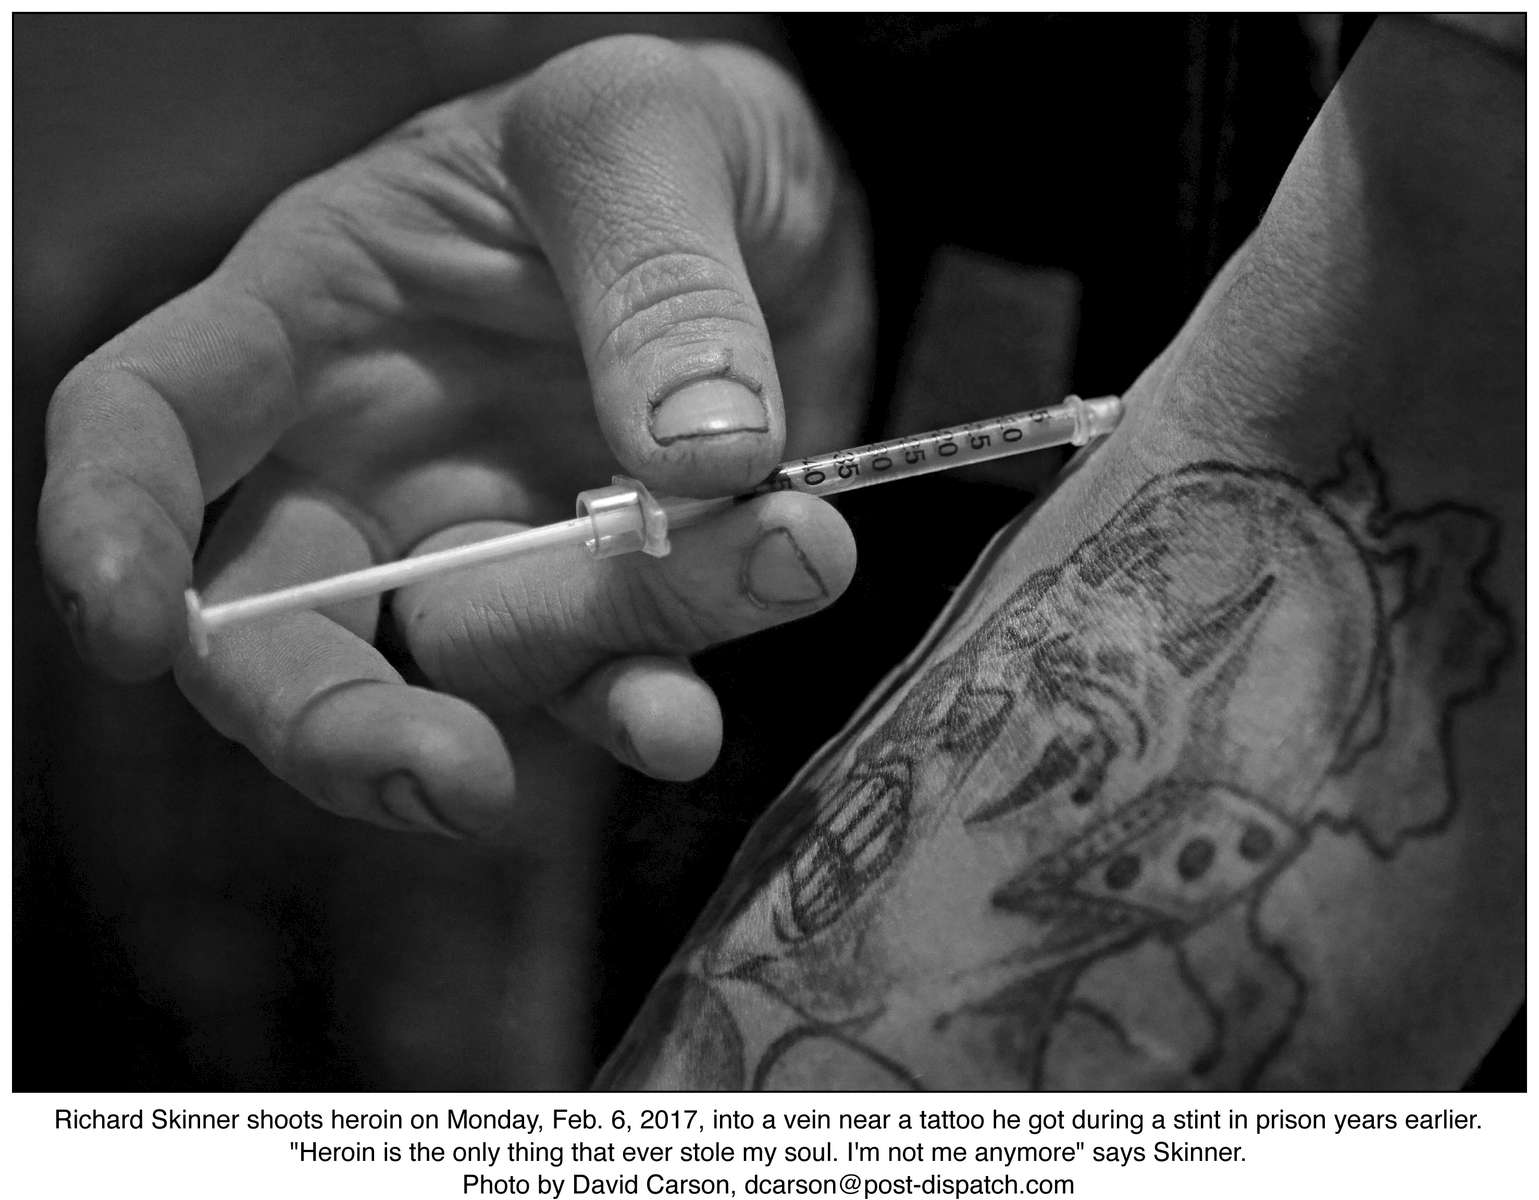 Richard Skinner shoots heroin on Monday, Feb. 6, 2017, into a vein near a tattoo he got during a stint in prison years earlier.  {quote}Heroin is the only thing that ever stole my soul. I'm not me anymore{quote} says Skinner.Photo by David Carson, dcarson@post-dispatch.com